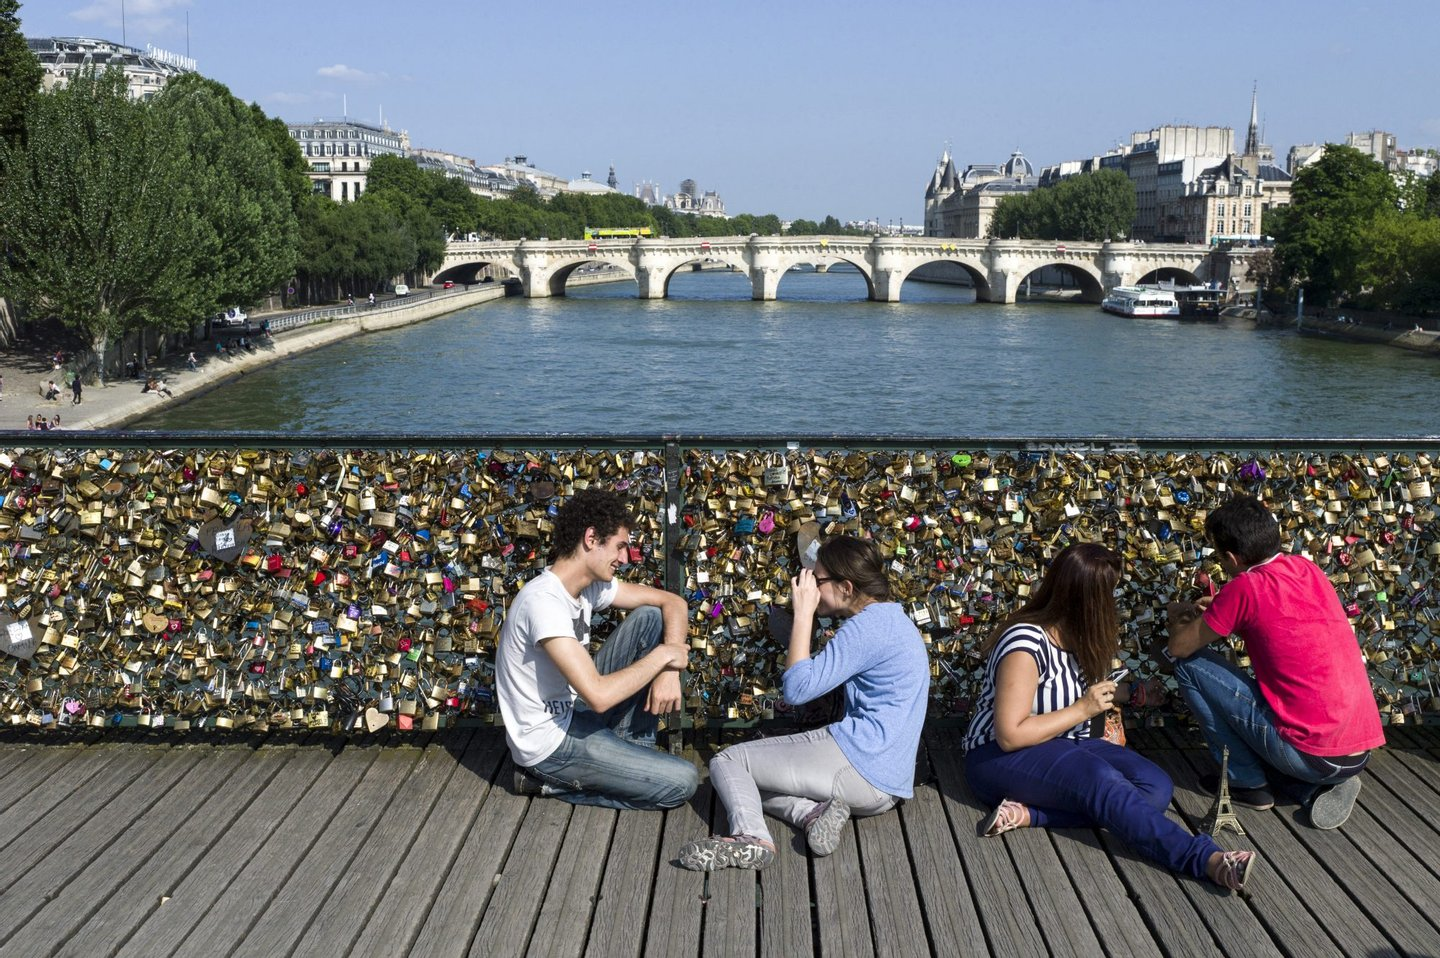 """People gather at the """"Pont des Arts"""" bridge on July 5, 2013 in Paris. AFP PHOTO / FRED DUFOUR (Photo credit should read FRED DUFOUR/AFP/Getty Images)"""